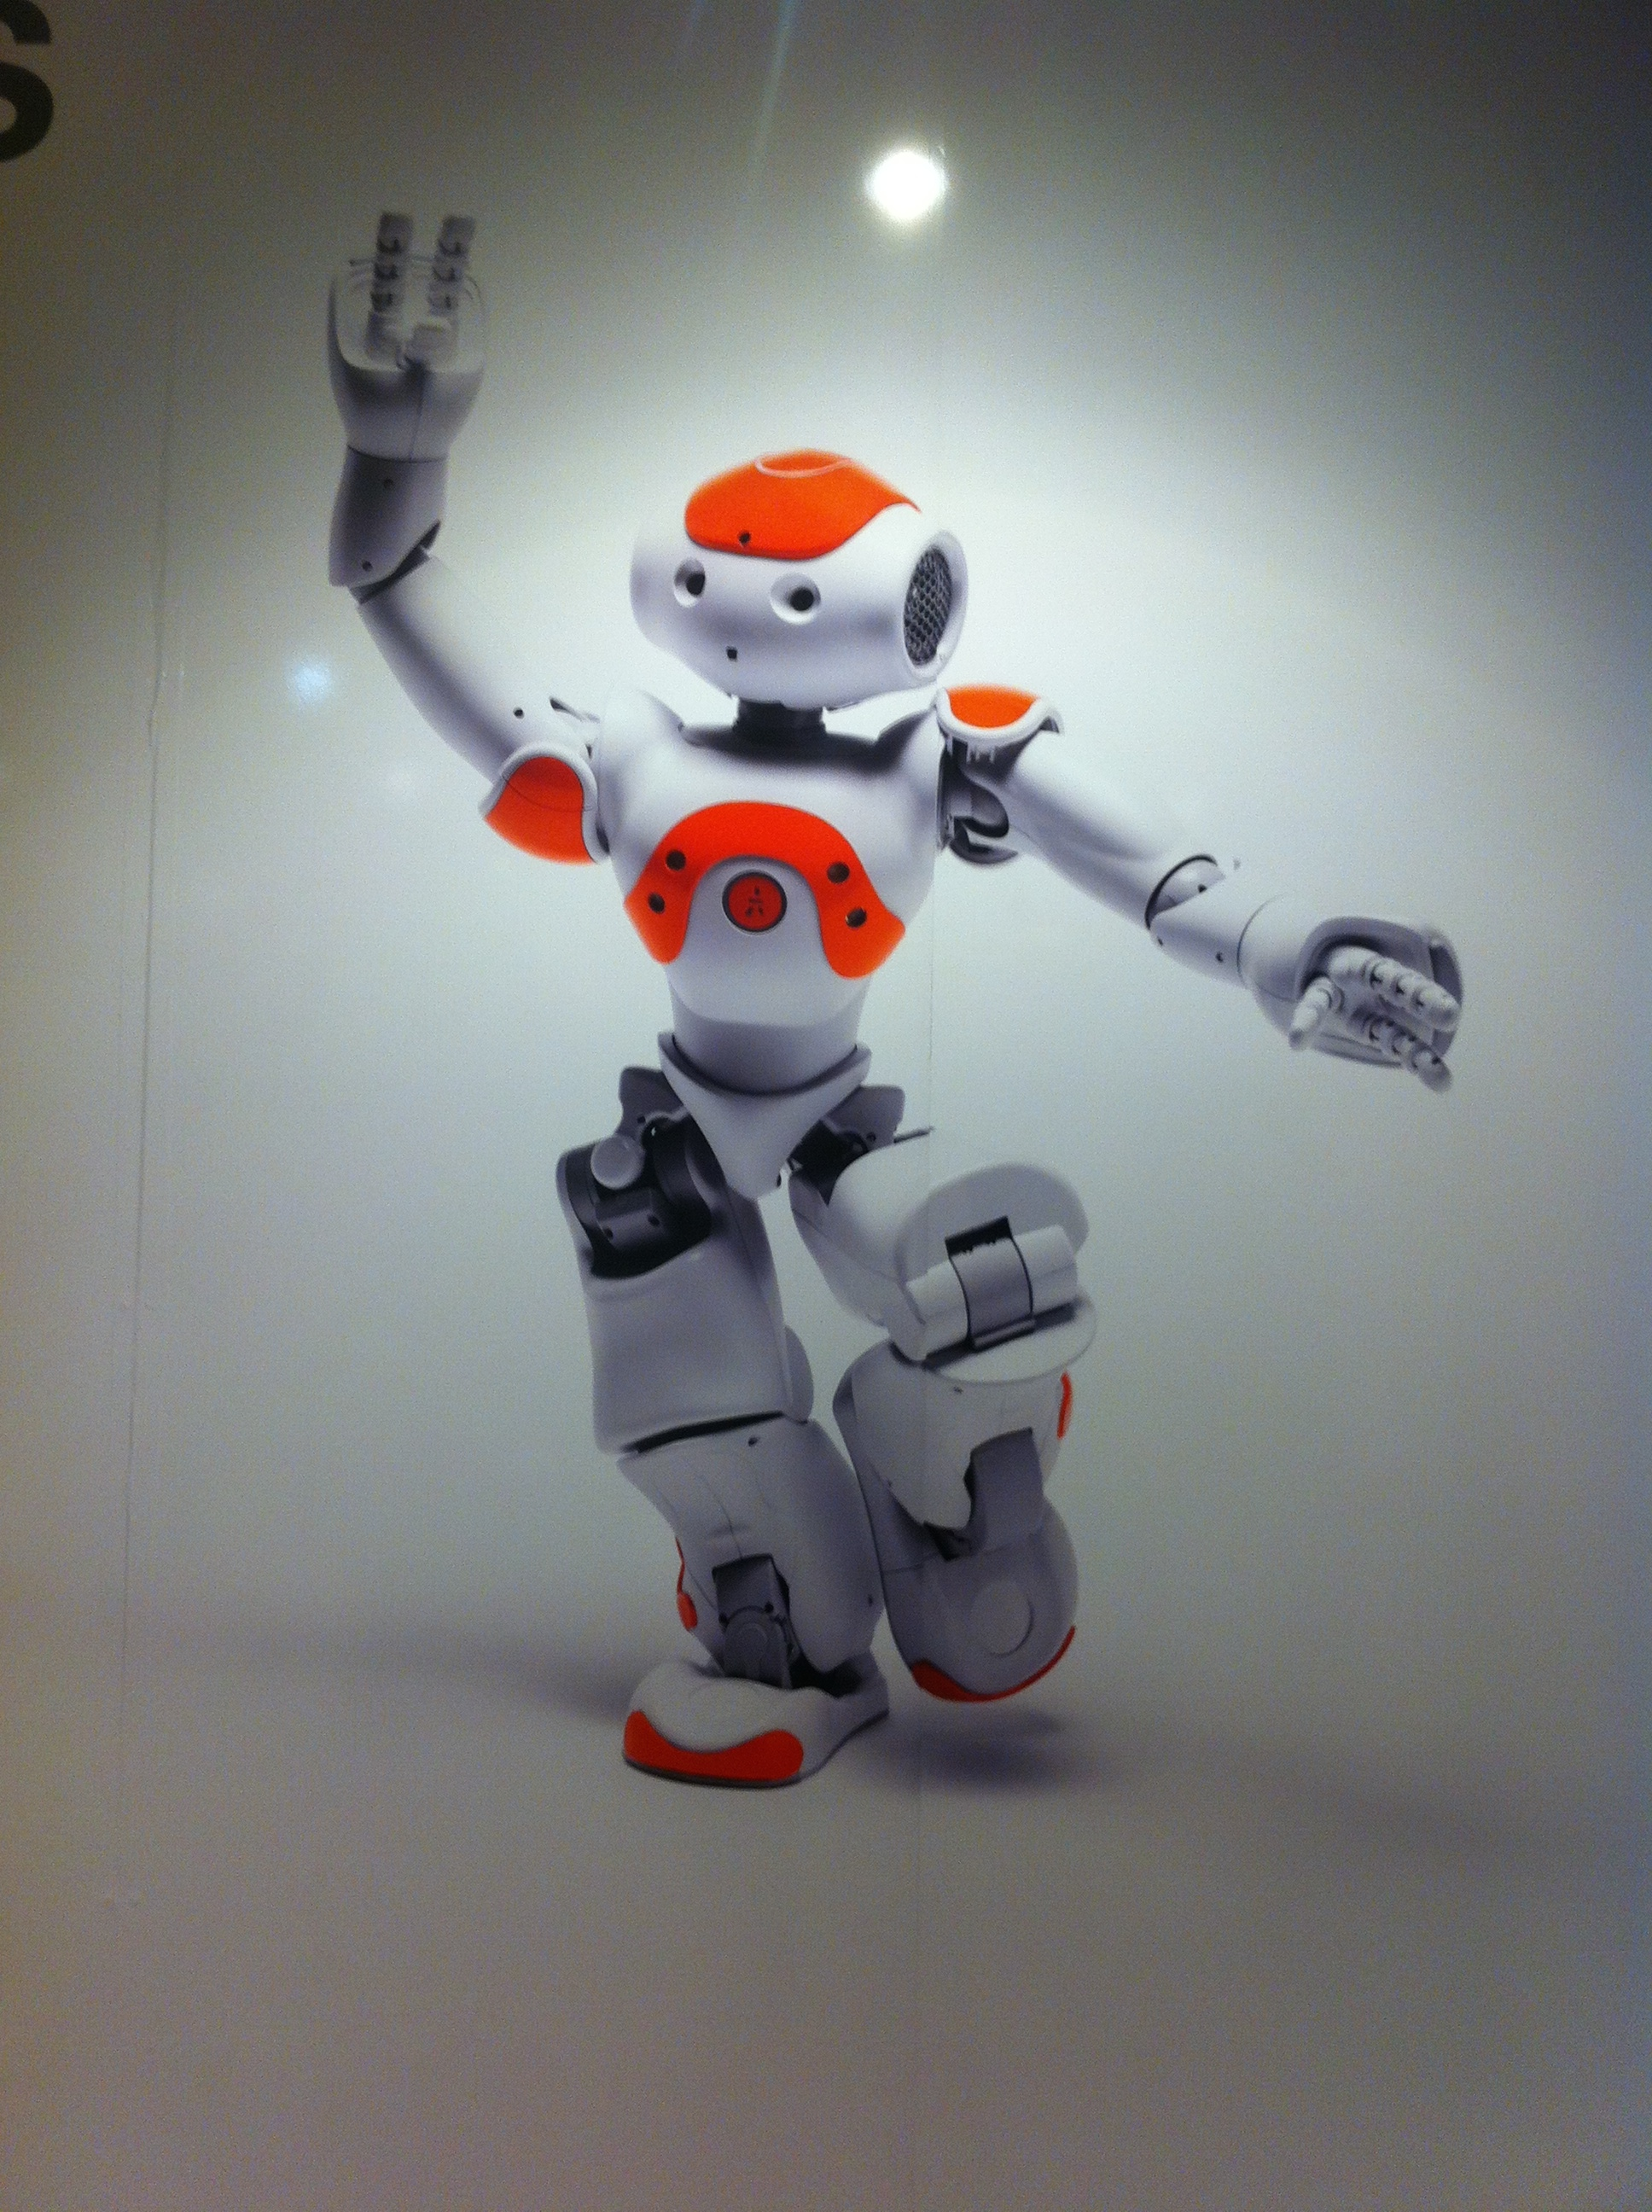 University researchers use humanoid robot to connect with children on the autism spectrum with video